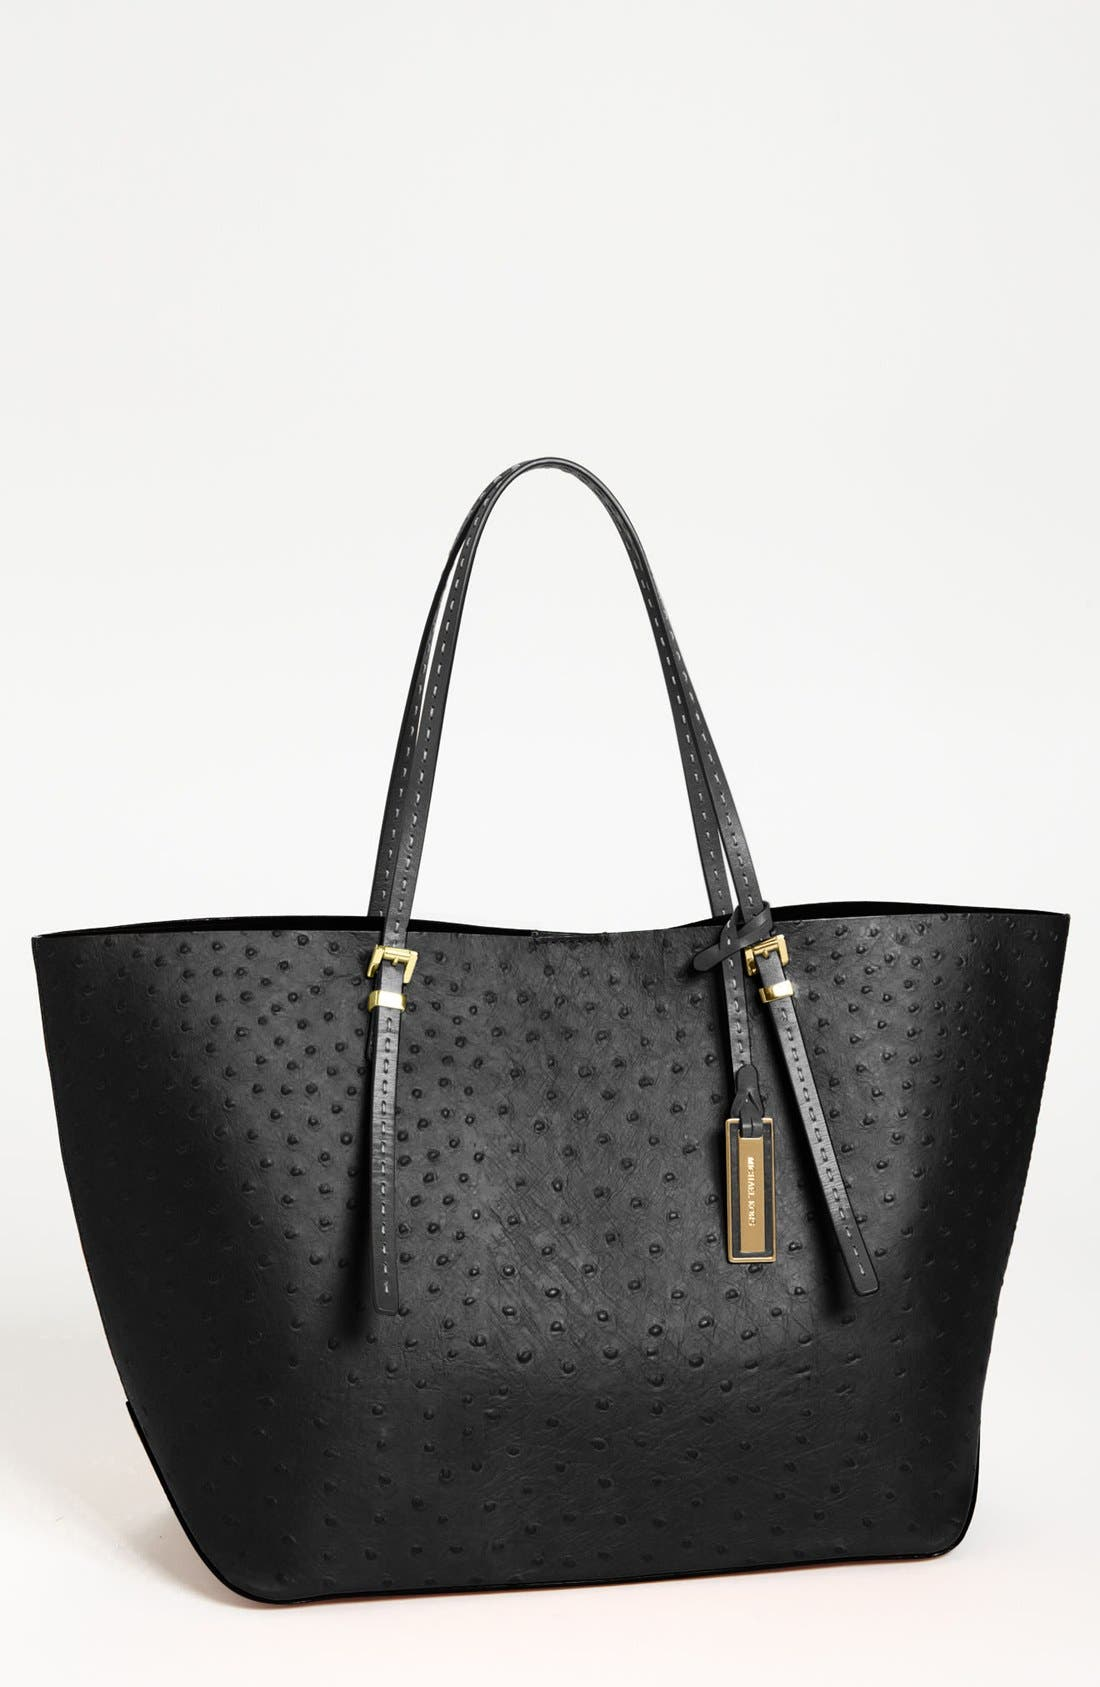 Main Image - Michael Kors 'Gia' Ostrich Embossed Leather Tote